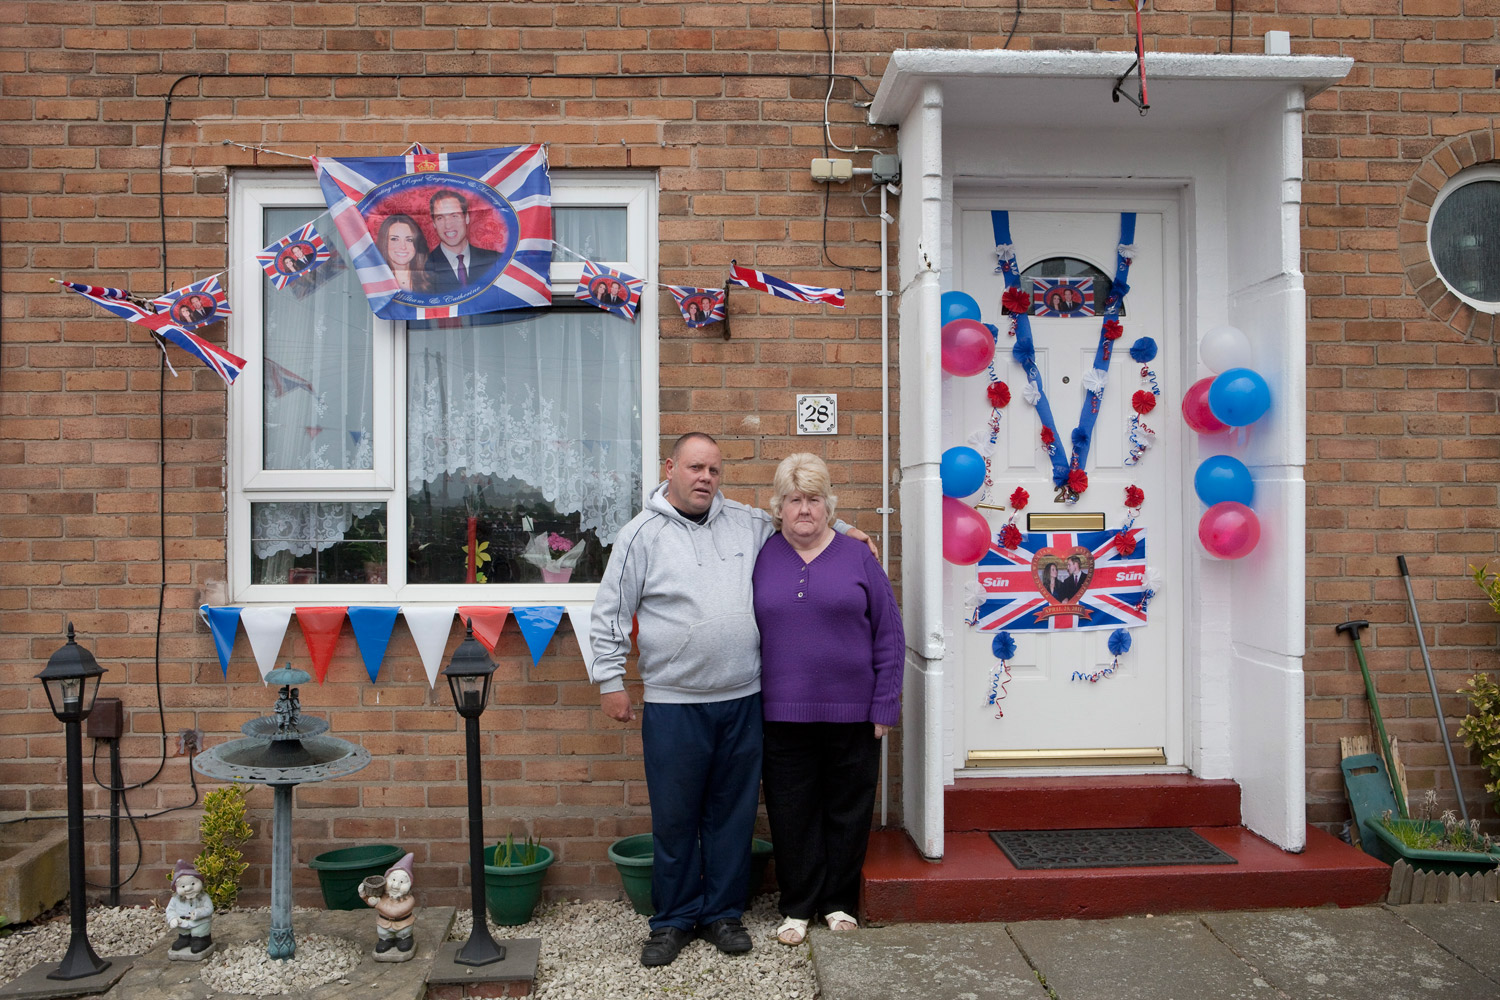 A couple decorated their house in celebration of the Royal Wedding in England.